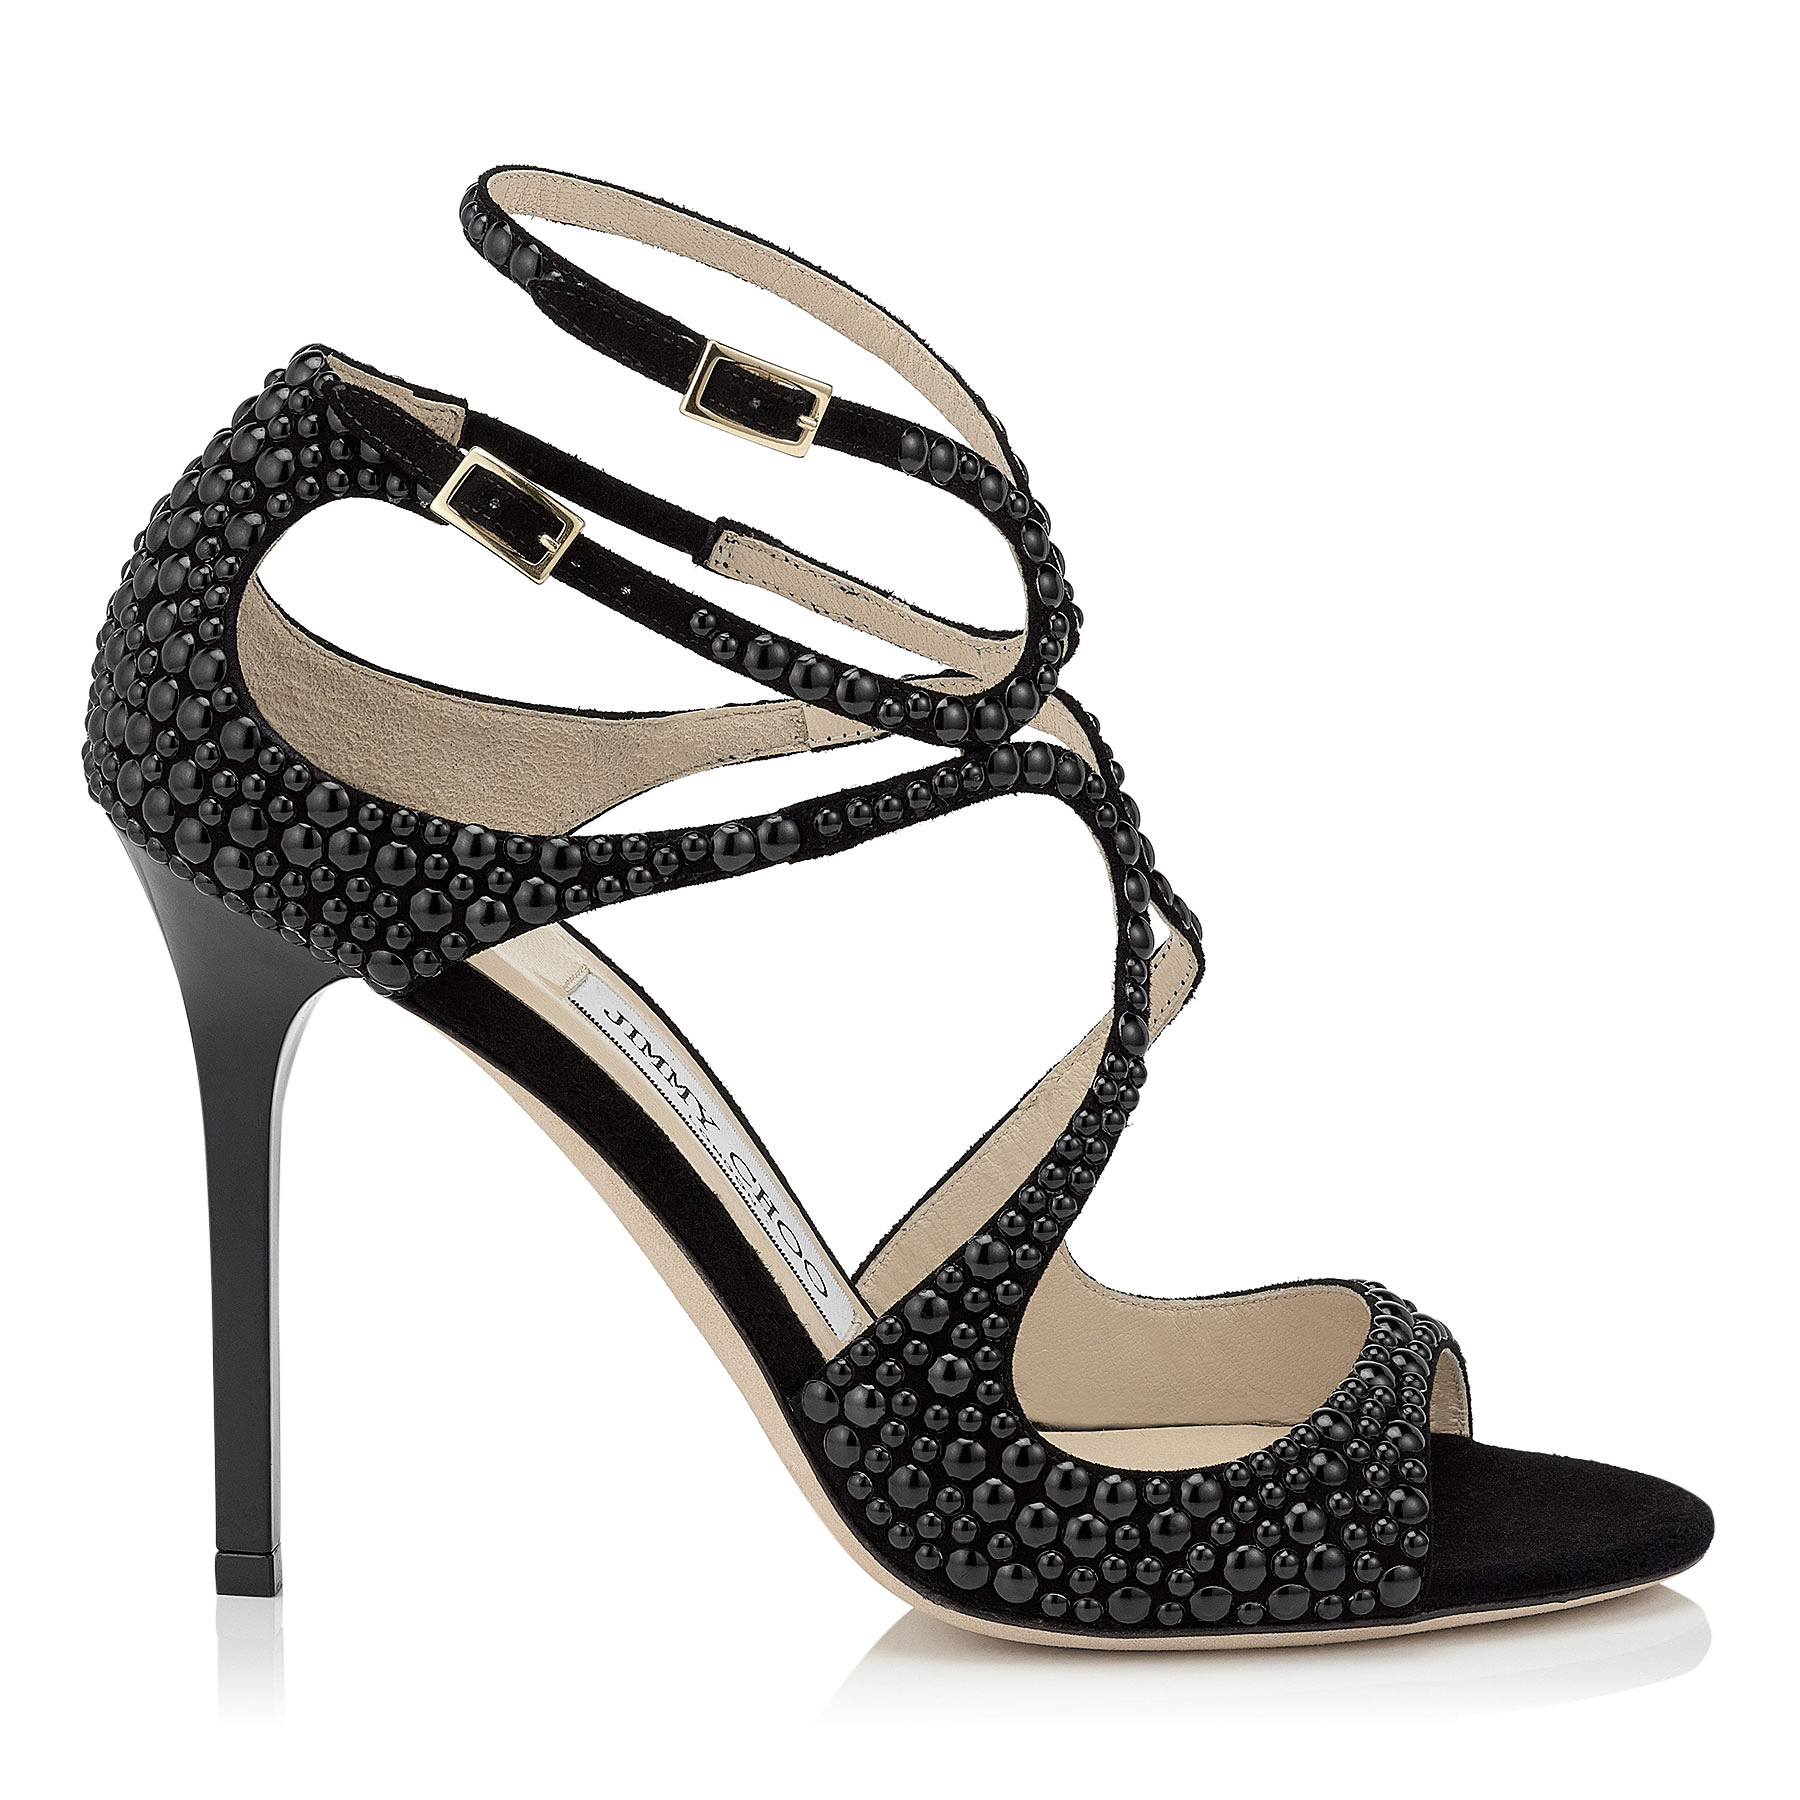 LANG Black Suede Sandals with Hotfix Beads